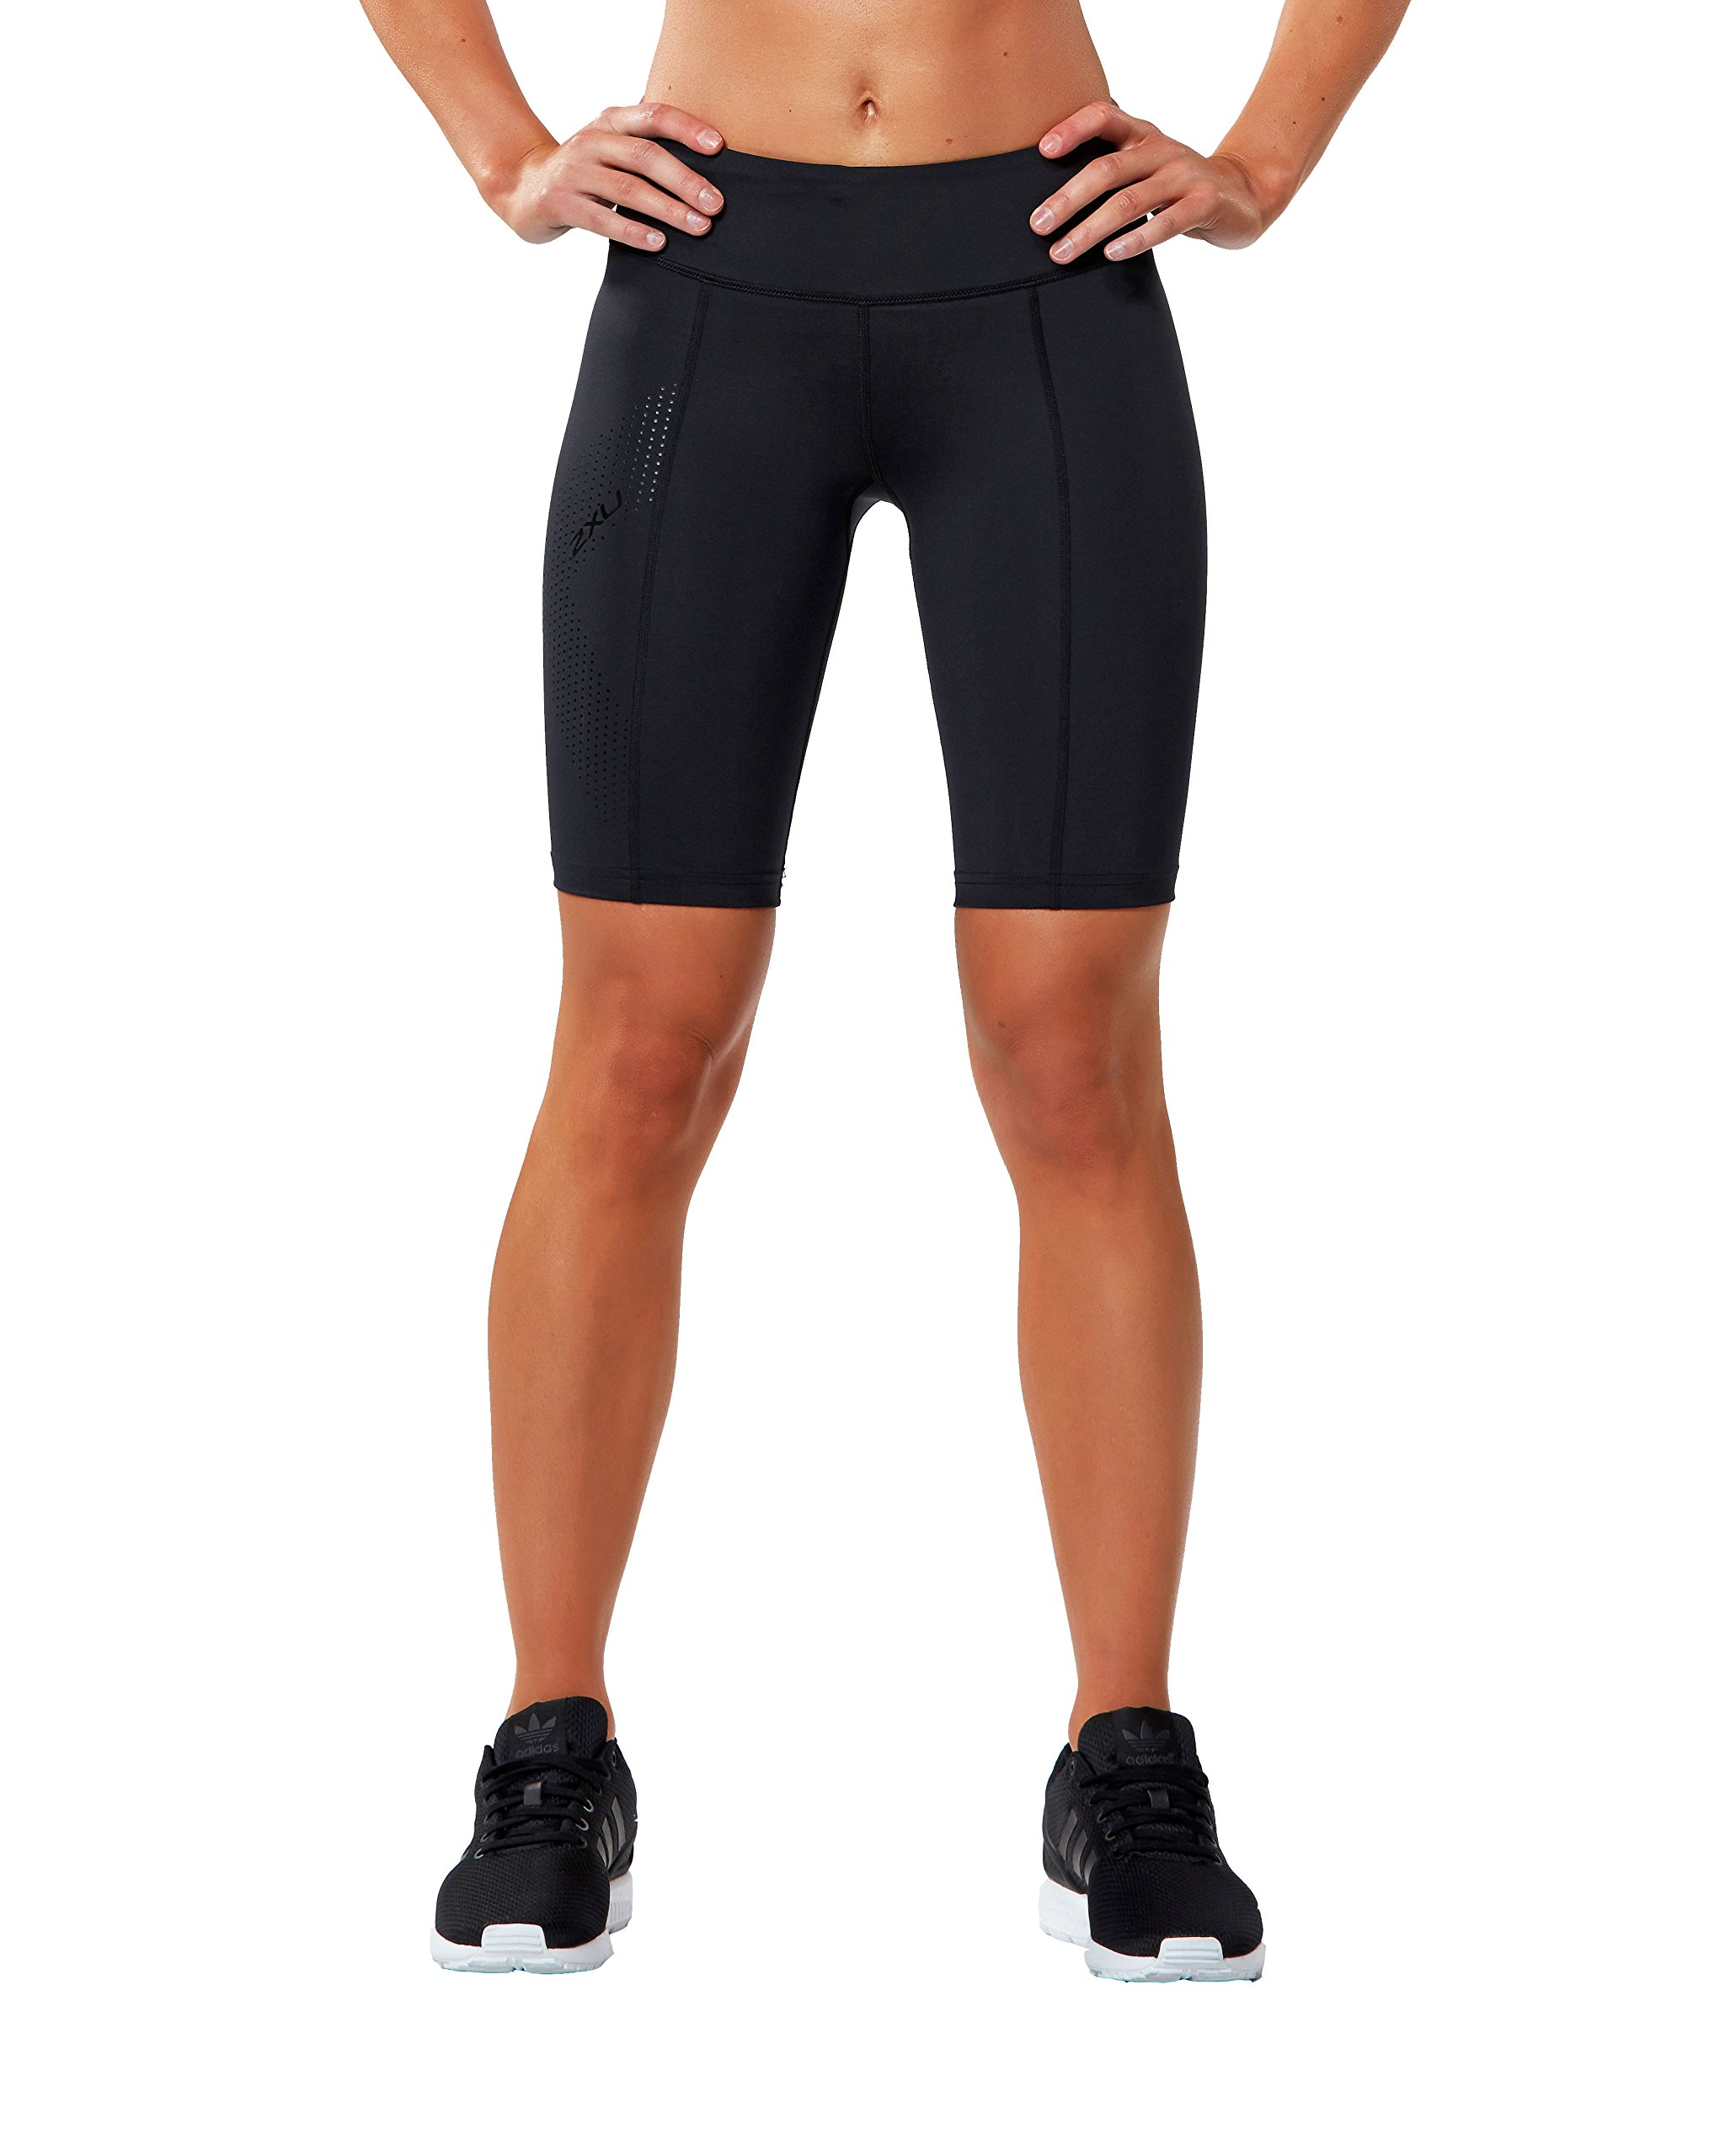 2XU Women's Mid-Rise Athletic Compression Shorts, Black/Dotted Black Logo, X-Small by 2XU (Image #2)